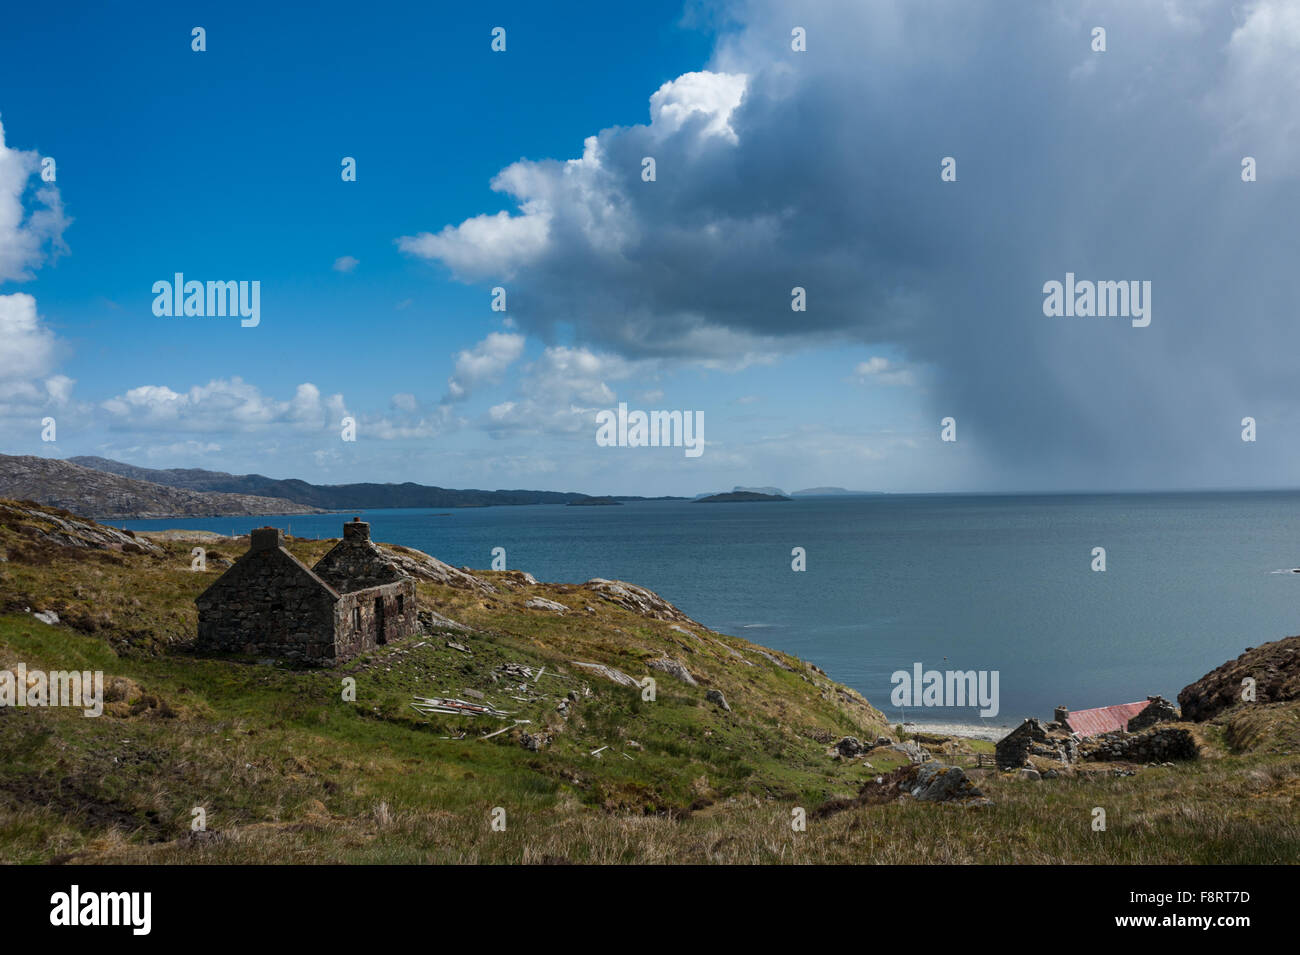 Squall in the Minch seen from Molinginish Stock Photo